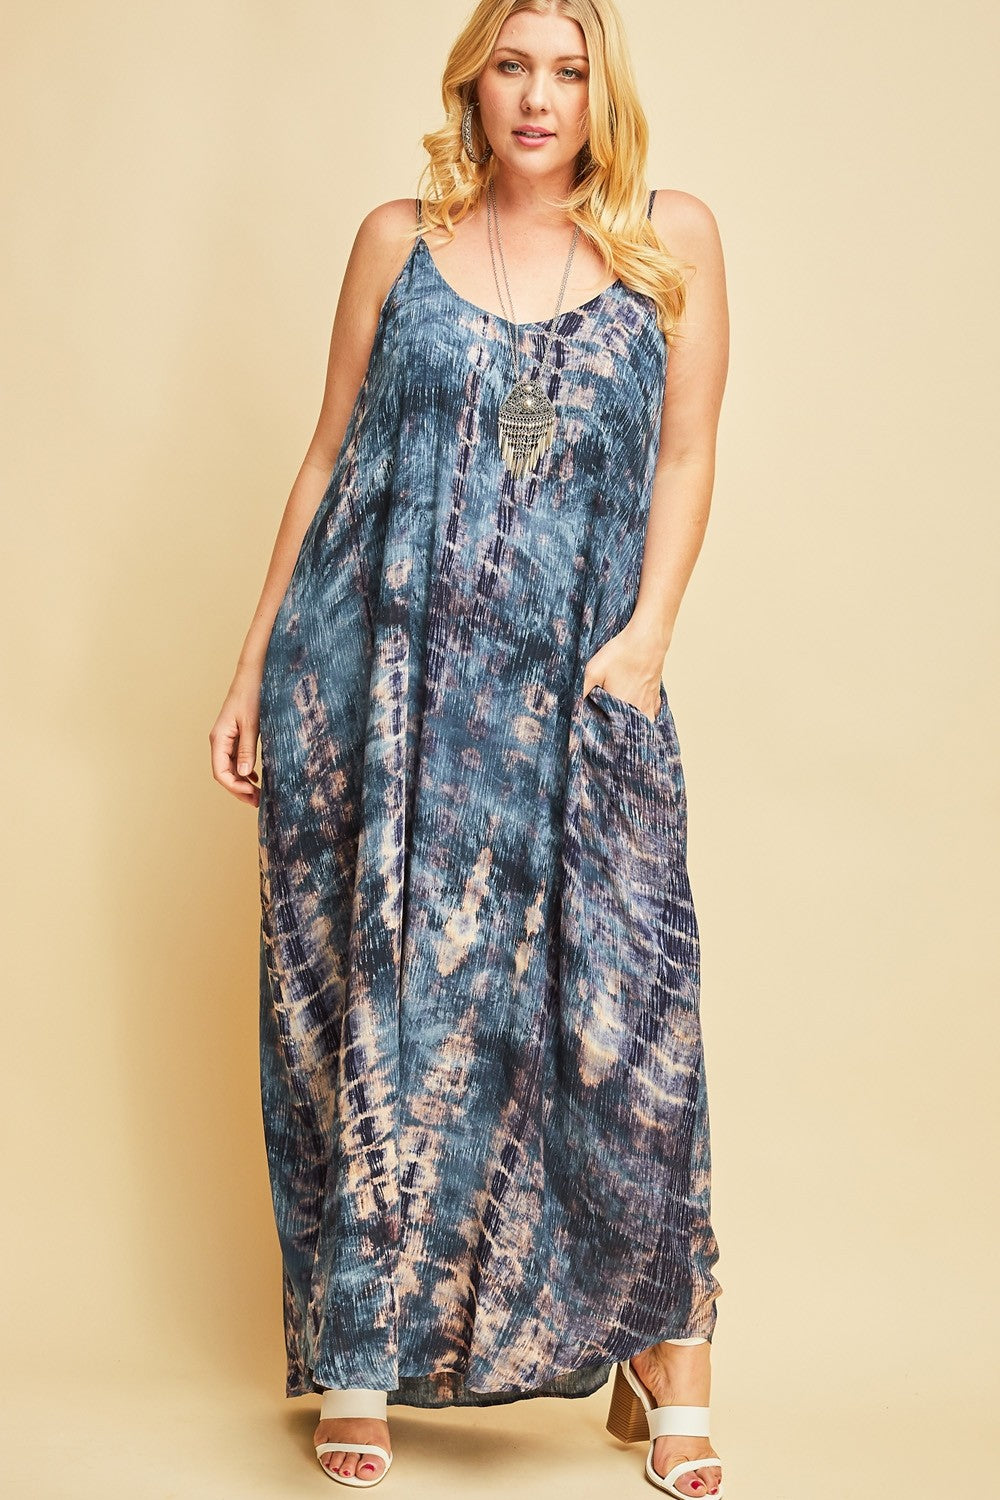 Front view plus size woman wearing sleeveless teal multi maxi dress with side pockets